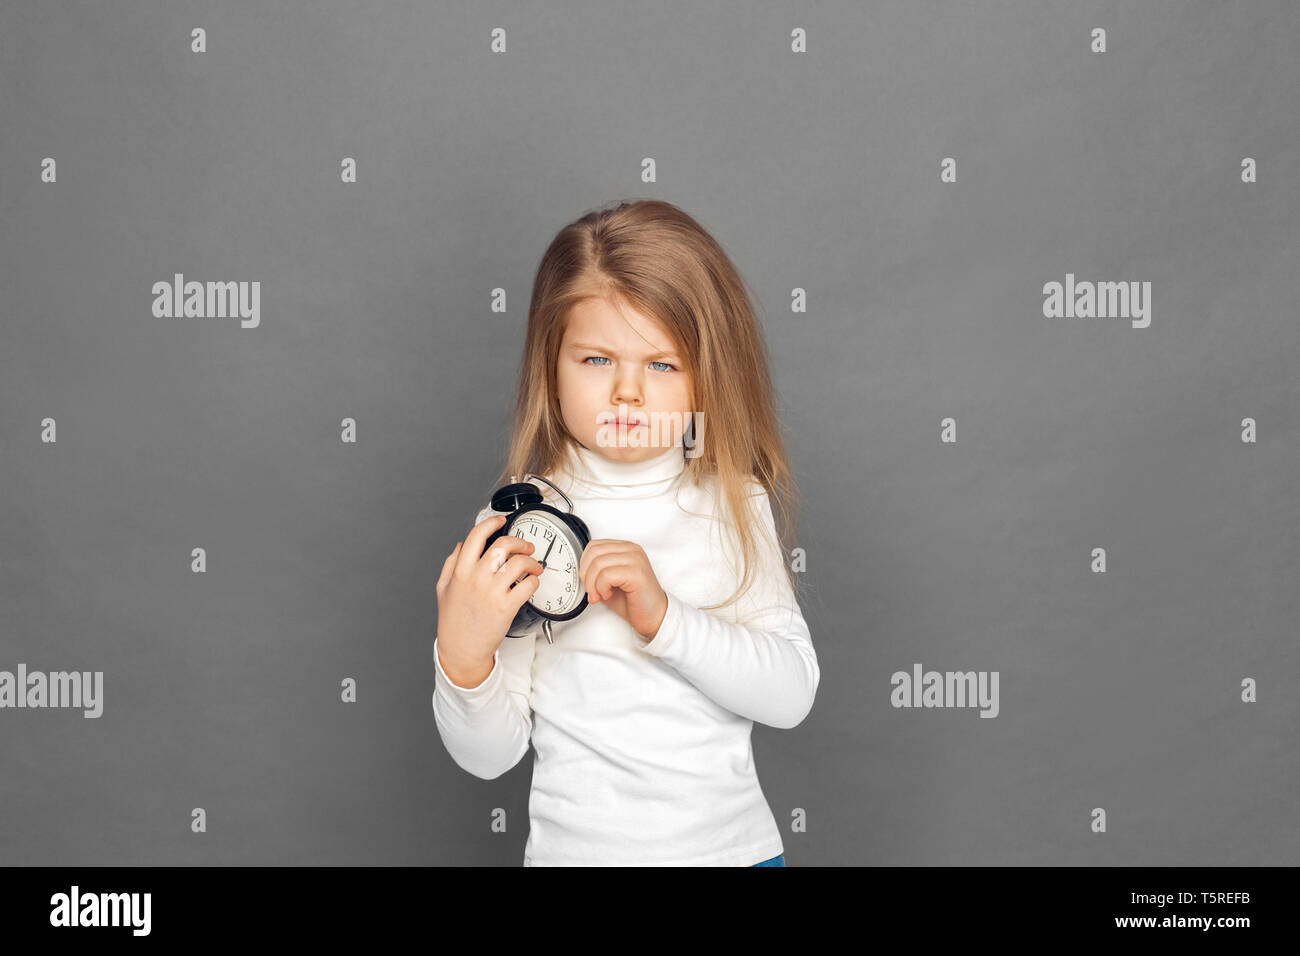 Little girl standing isolated on grey background holding alarm clock looking camera grimacing unhappy - Stock Image